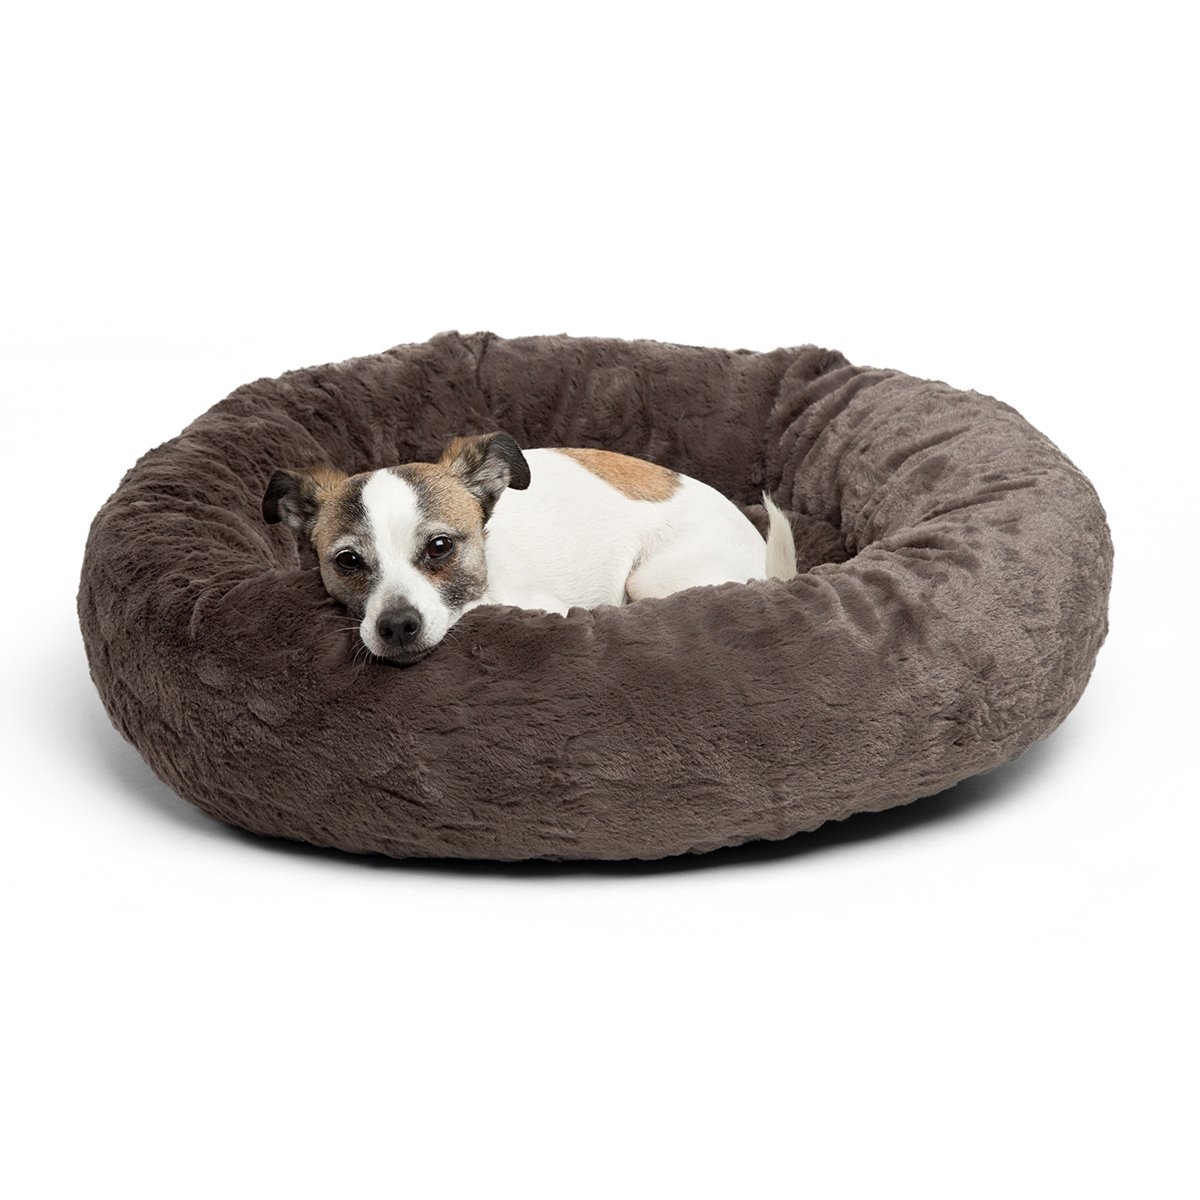 Best Friends by Sheri Luxury Faux Fur Donut Cuddler 23×23 , Mink – Small Round Donut Cat and Dog Cushion Bed, Orthopedic Relief